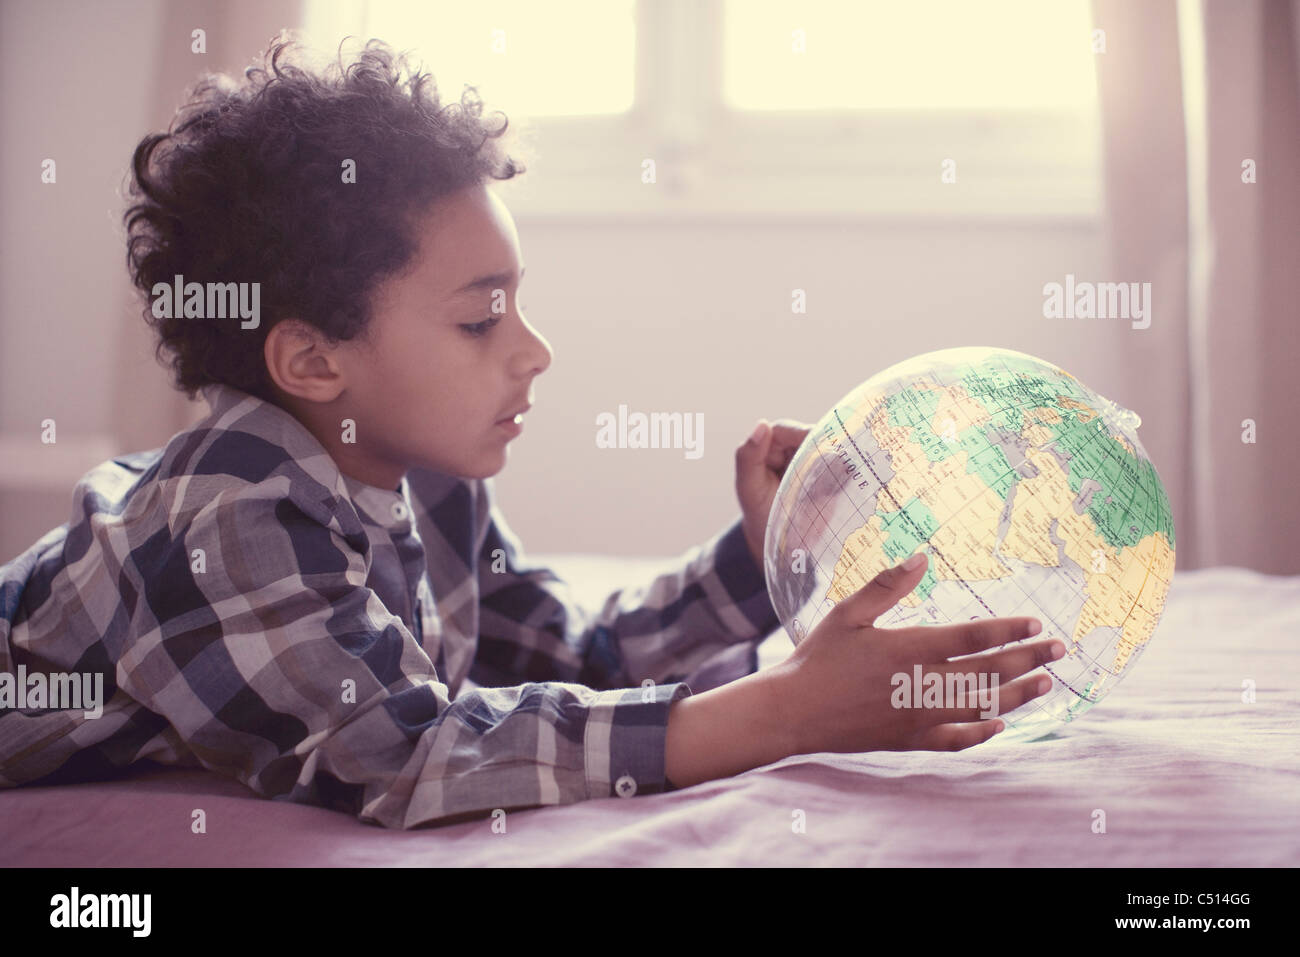 Little boy looking at inflatable globe - Stock Image